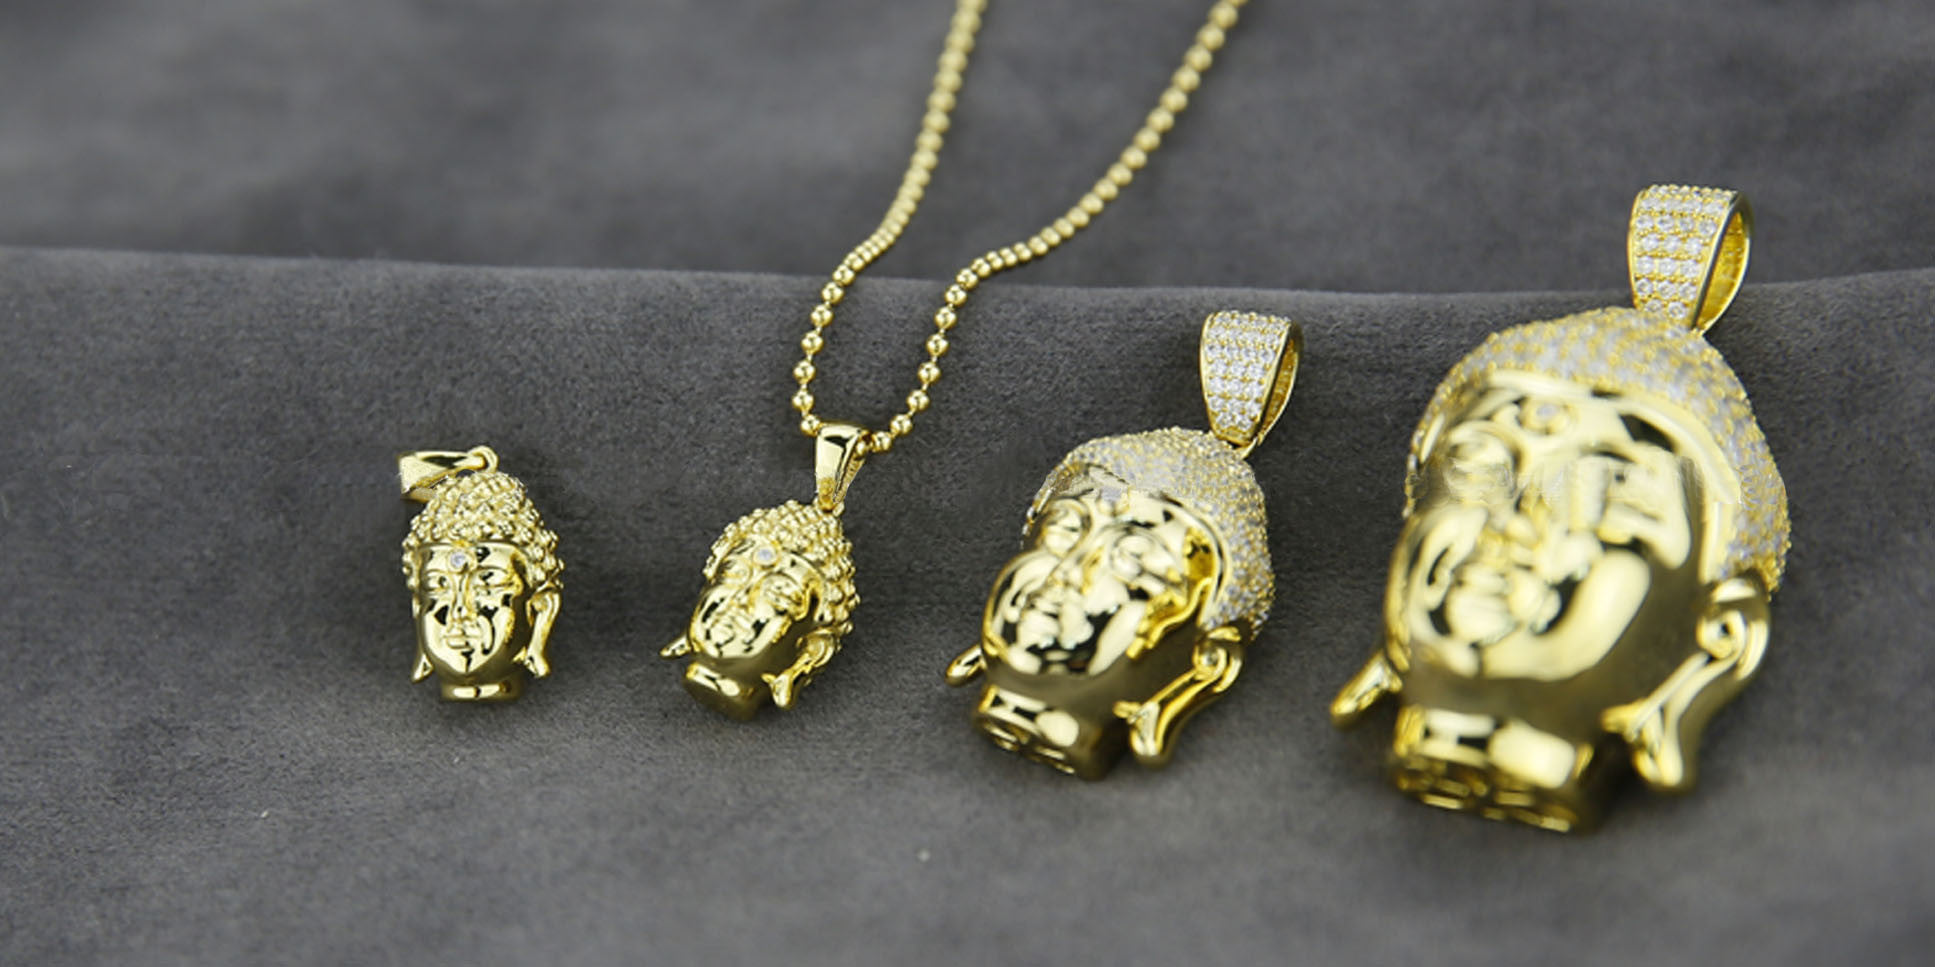 Buddha pendant & necklace chain